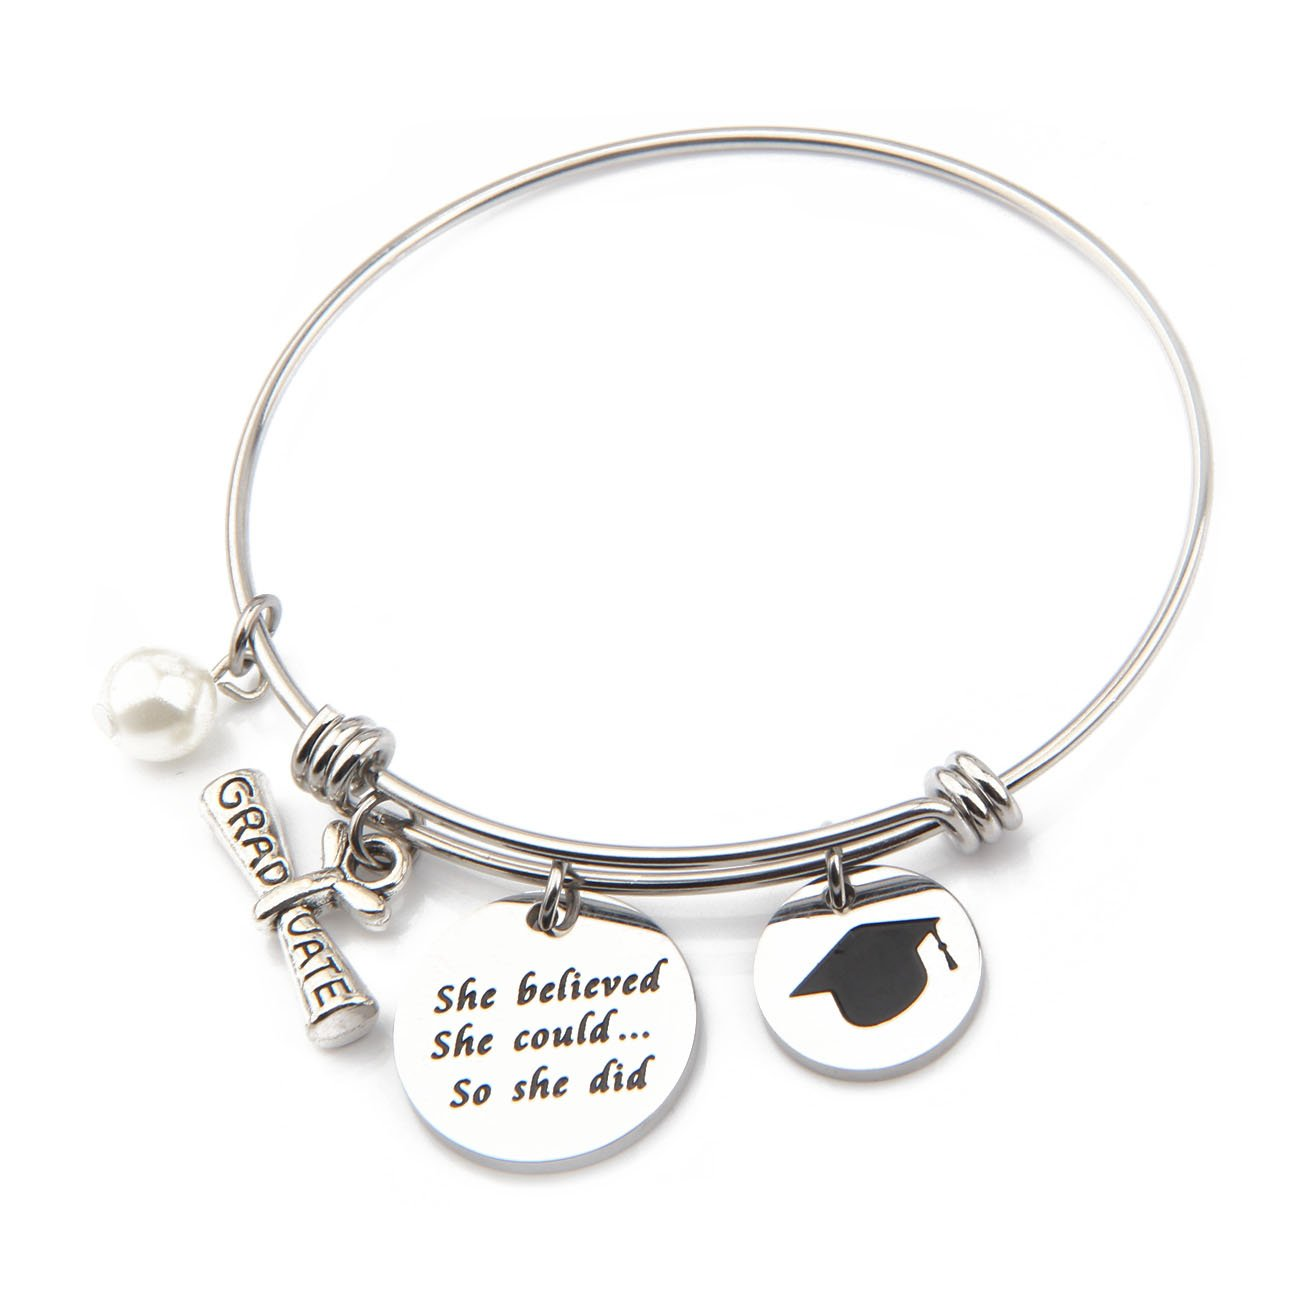 "Ensianth, bracciale con ciondolo, ottimo regalo di laurea, bracciale motivazionale con scritta in lingua inglese ""She believed she could so she did"""